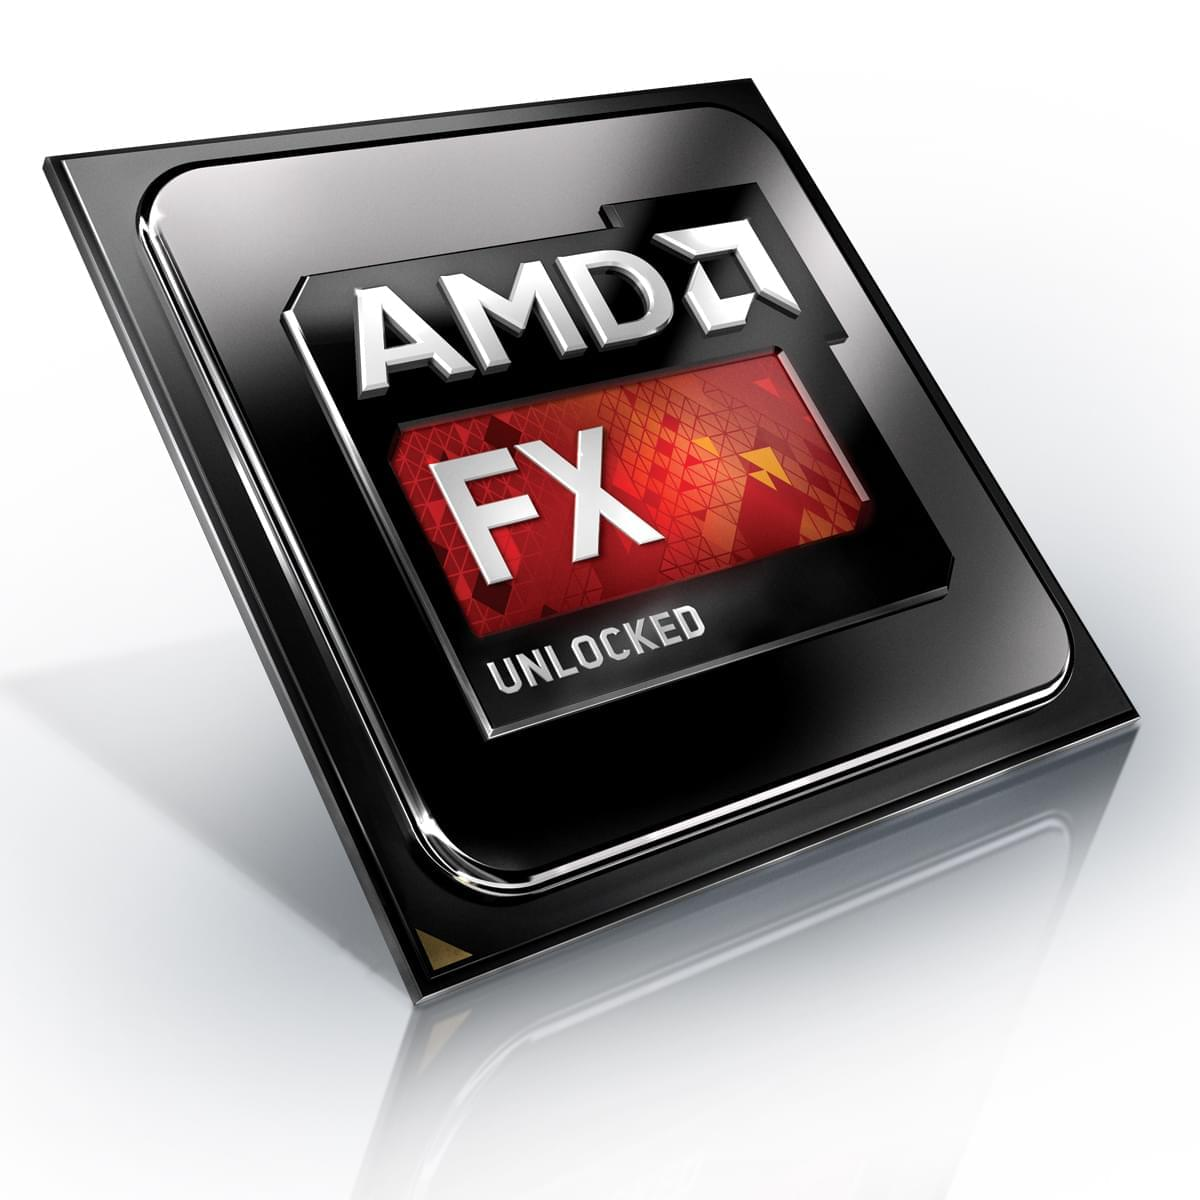 Processeur AMD FX-8320E Black Ed. - 3.5GHz - Gamer -  - 0